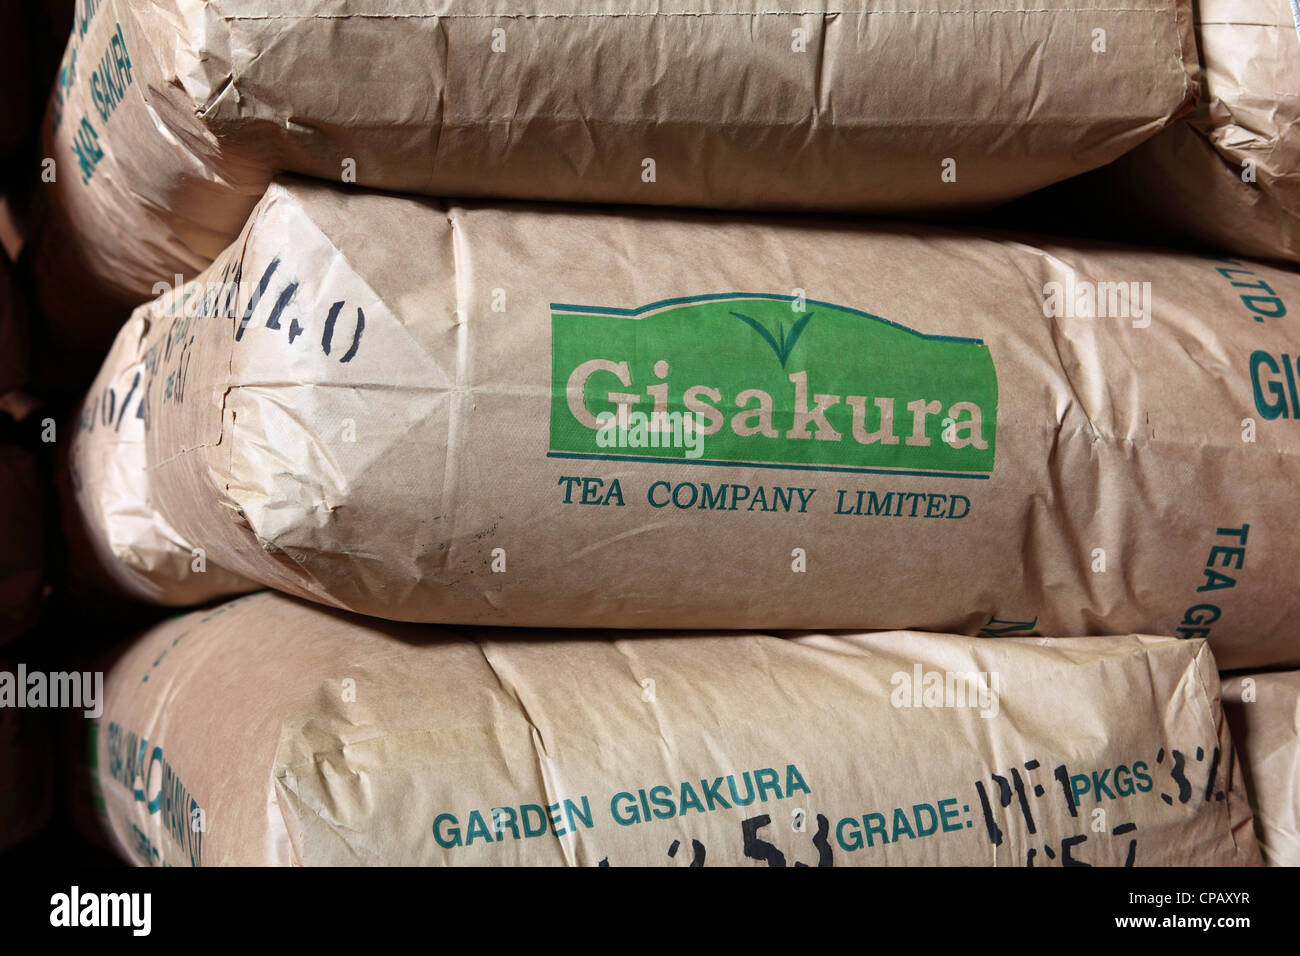 Sacks of tea in the storehouse following the completion of the tea production process at the Gisakura Tea Factory - Stock Image